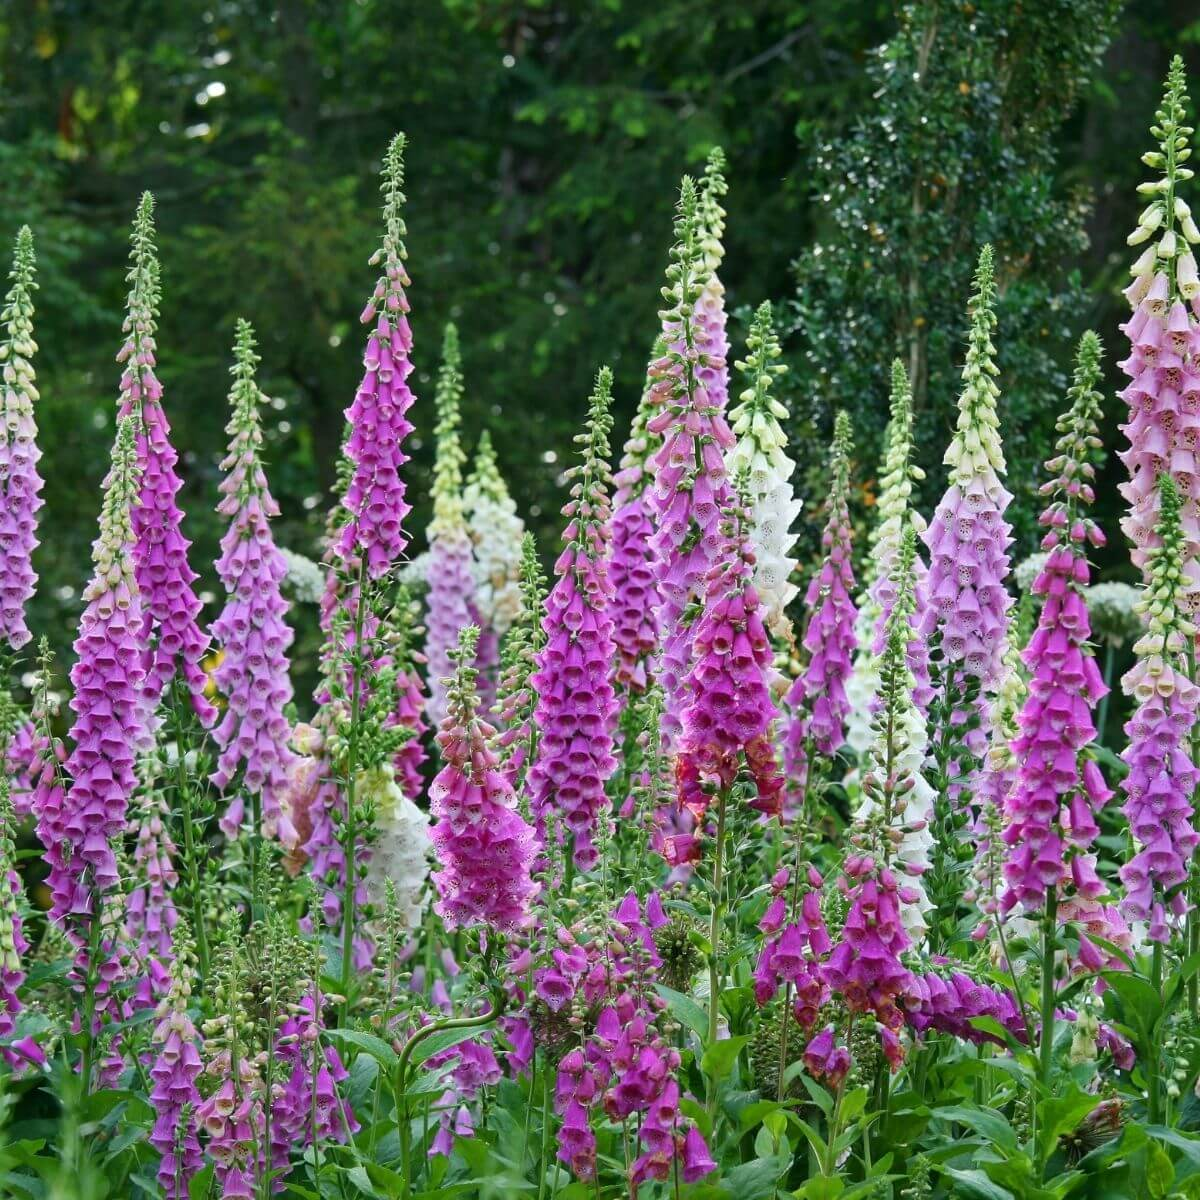 Colorful Foxgloves flowering in the garden.